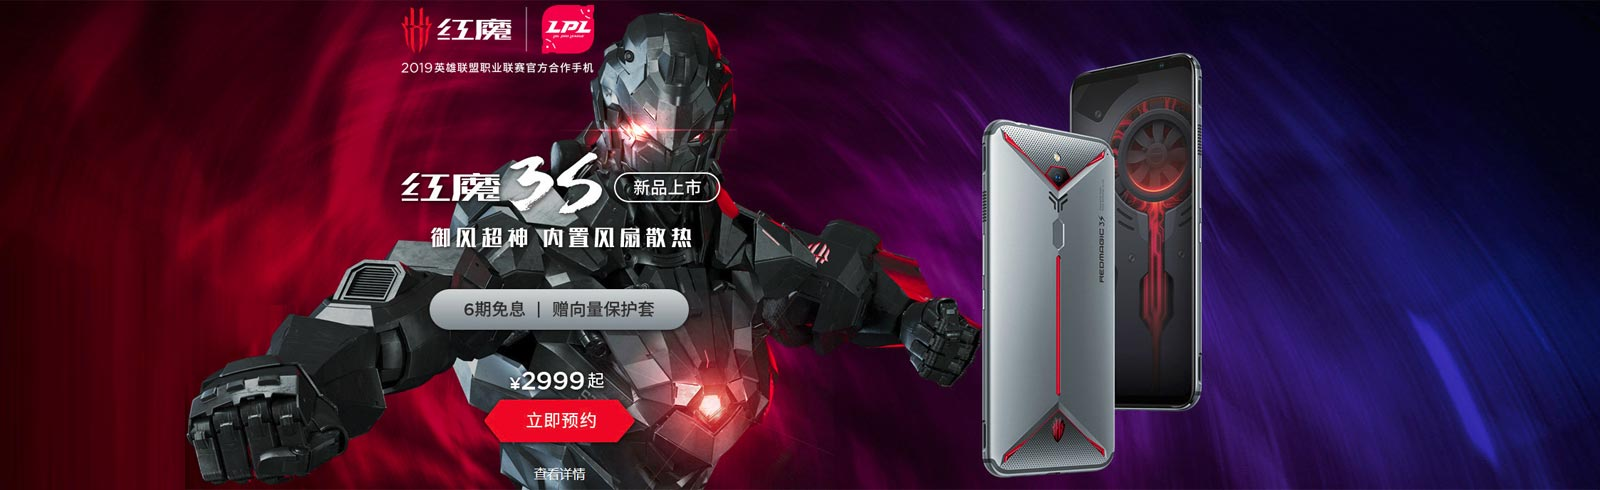 nubia Red Magic 3S goes official, costs CNY 2999 (USD 420)